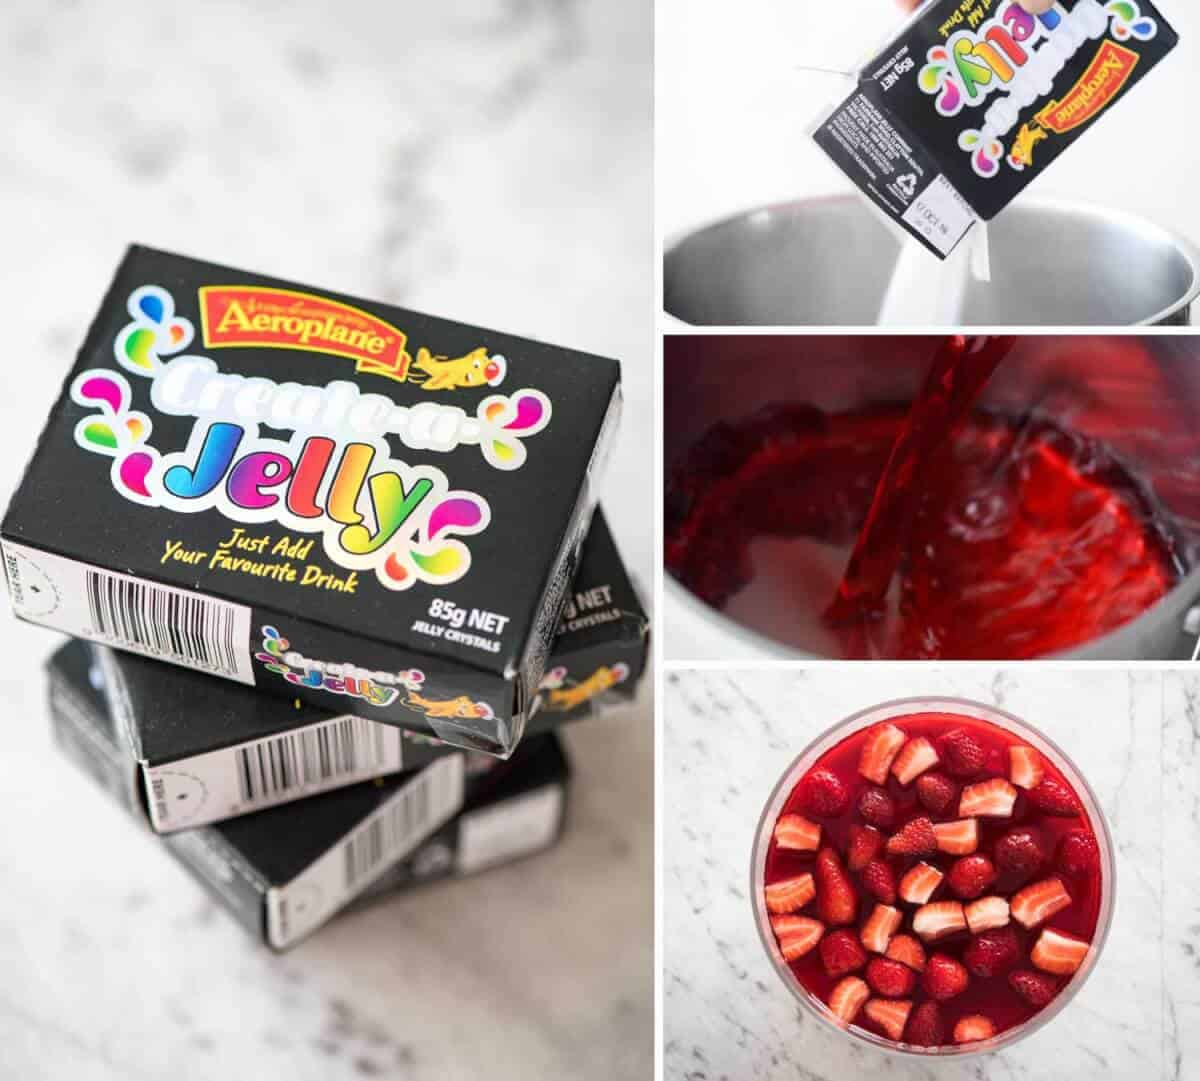 Cranberry Jelly using Flavourless Aeroplane Jelly